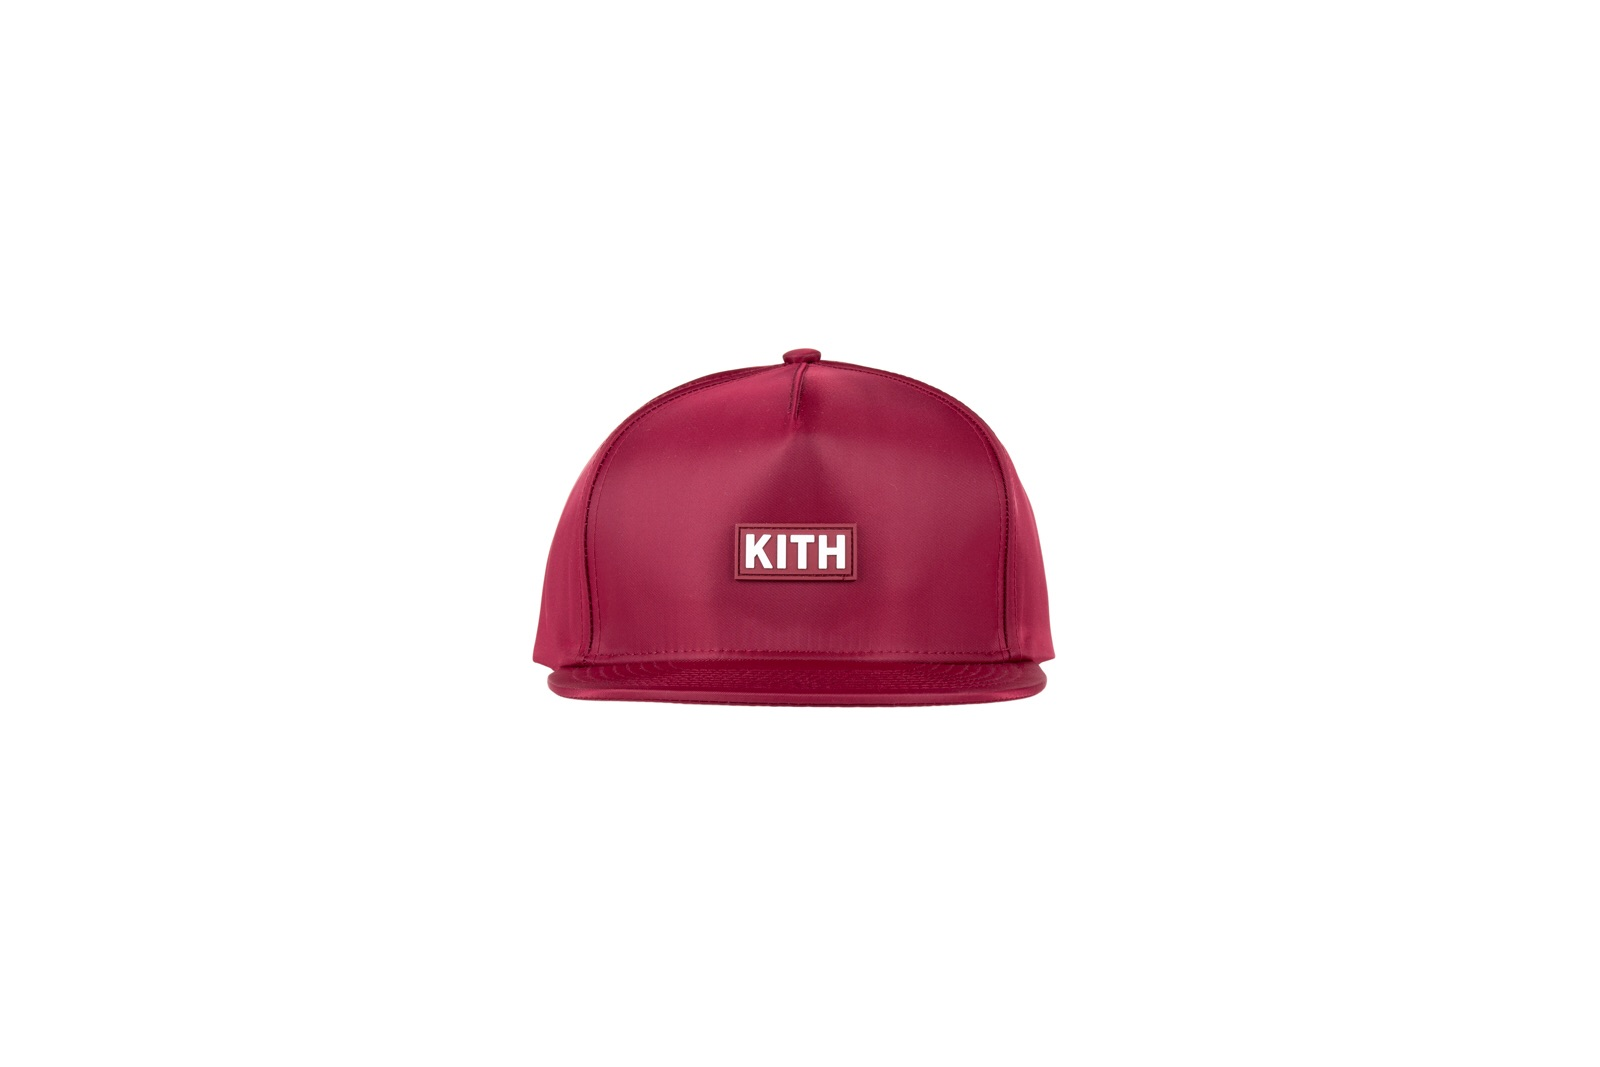 The Pinch Crown Snapback will be available Friday, November 28th, for a retail price of $45USD.